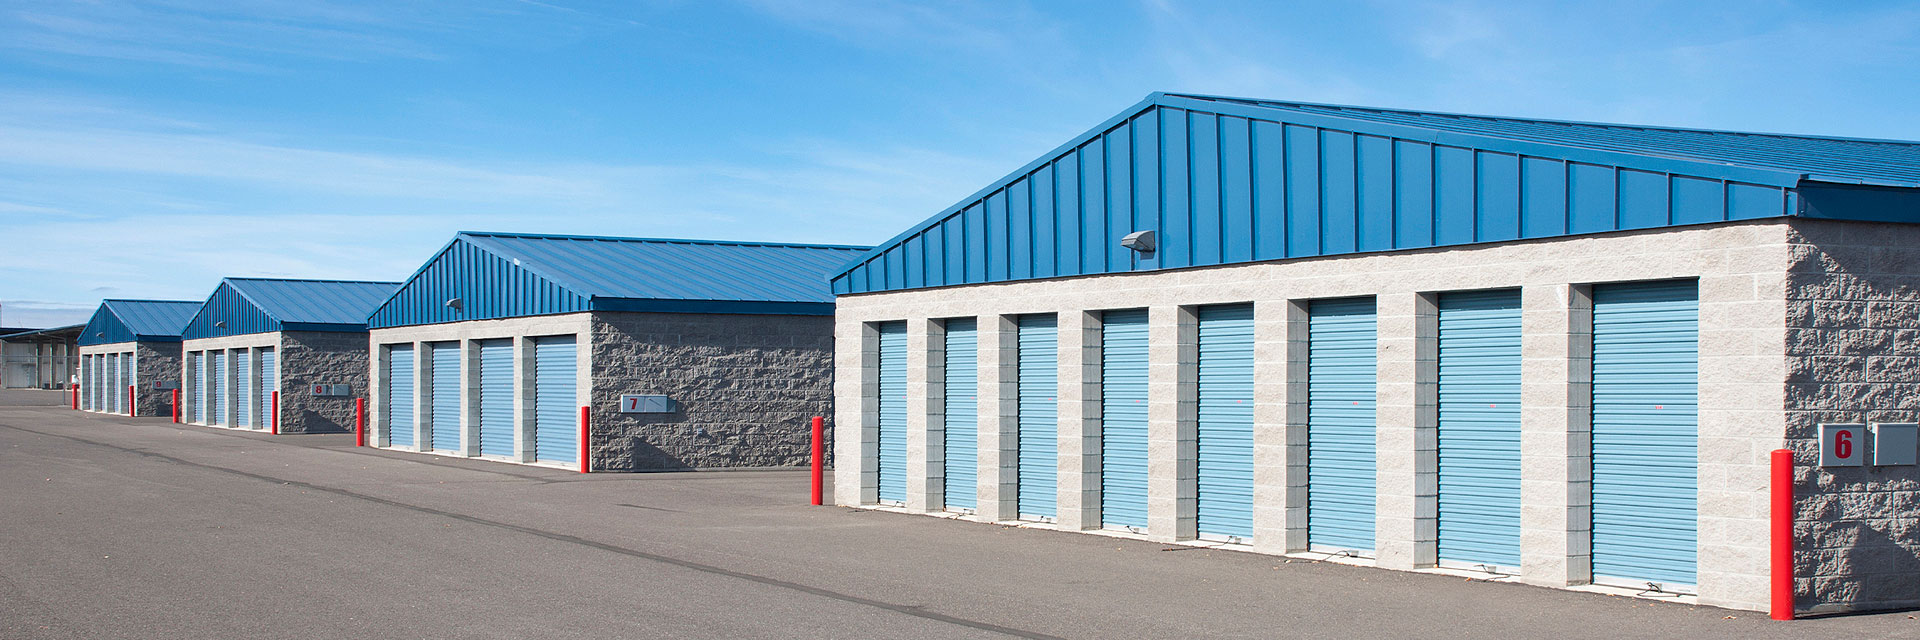 Only national network of brokers who specialize in self-storage properties.